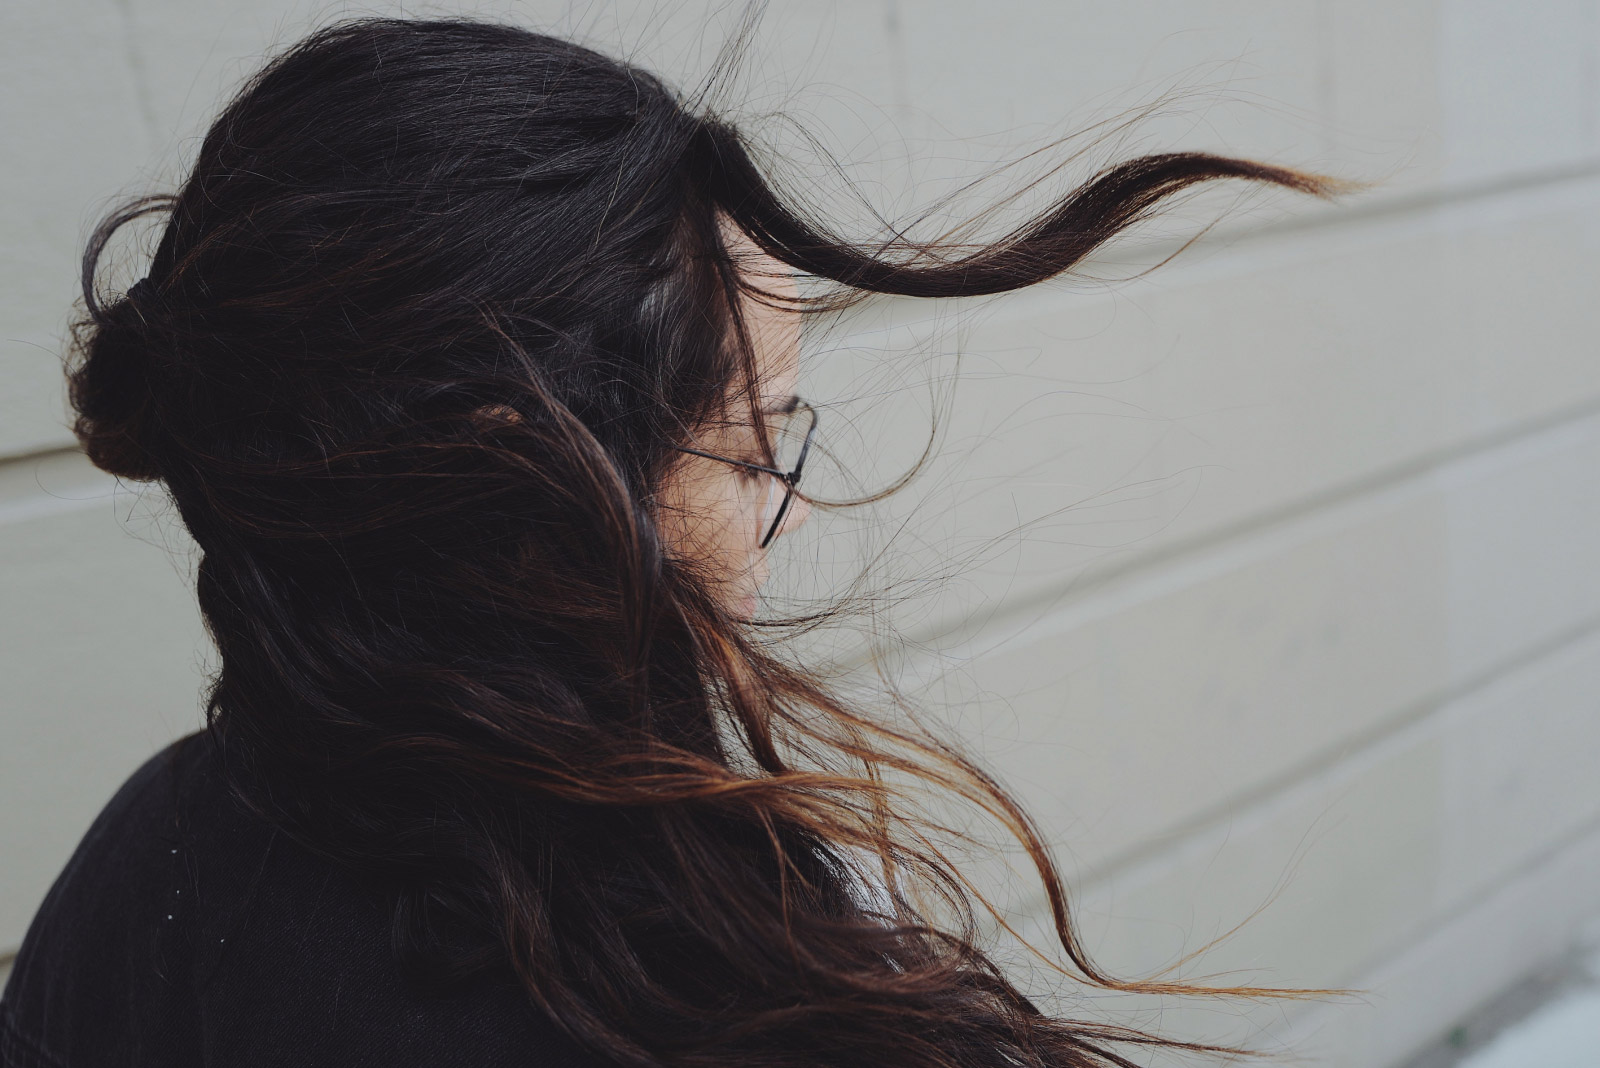 Davines-Alchemic-System-Alchemic-Shampoo-Tobacco-abloomnova.net_-1600x1068 5 Ways you can look after your hair this winter